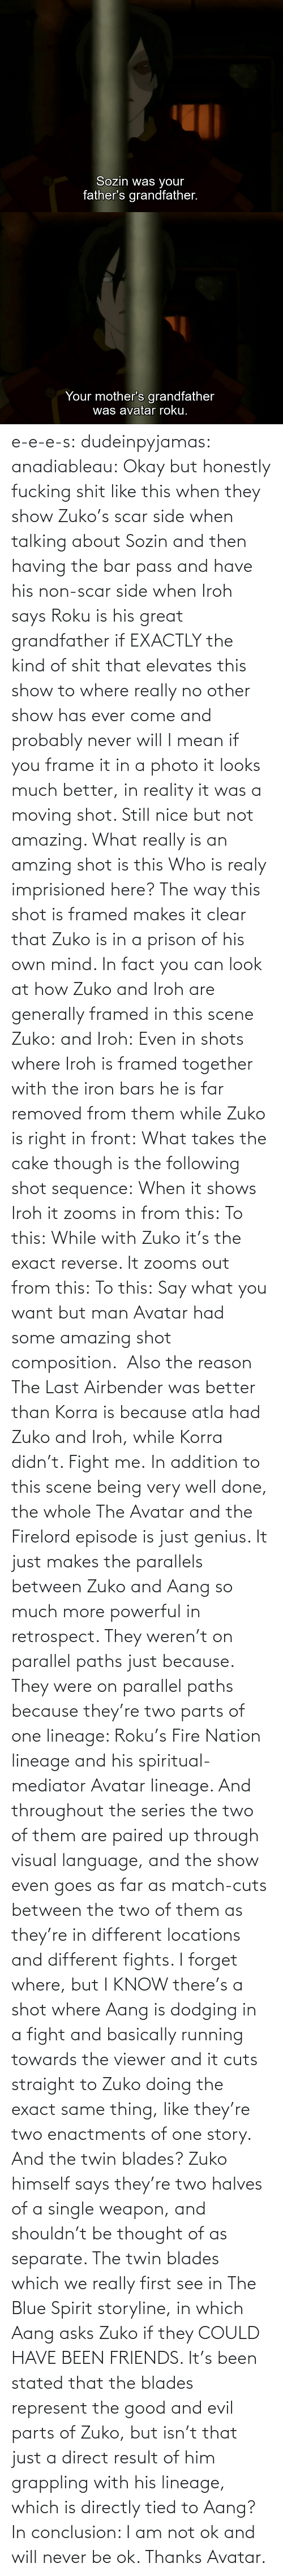 Bars: e-e-e-s: dudeinpyjamas:   anadiableau: Okay but honestly fucking shit like this when they show Zuko's scar side when talking about Sozin and then having the bar pass and have his non-scar side when Iroh says Roku is his great grandfather if EXACTLY the kind of shit that elevates this show to where really no other show has ever come and probably never will I mean if you frame it in a photo it looks much better, in reality it was a moving shot. Still nice but not amazing. What really is an amzing shot is this Who is realy imprisioned here? The way this shot is framed makes it clear that Zuko is in a prison of his own mind. In fact you can look at how Zuko and Iroh are generally framed in this scene Zuko: and Iroh: Even in shots where Iroh is framed together with the iron bars he is far removed from them while Zuko is right in front:  What takes the cake though is the following shot sequence: When it shows Iroh it zooms in from this: To this: While with Zuko it's the exact reverse. It zooms out from this: To this: Say what you want but man Avatar had some amazing shot composition.   Also the reason The Last Airbender was better than Korra is because atla had Zuko and Iroh, while Korra didn't. Fight me.    In addition to this scene being very well done, the whole The Avatar and the Firelord episode is just genius.  It just makes the parallels between Zuko and Aang so much more powerful in retrospect.  They weren't on parallel paths just because.  They were on parallel paths because they're two parts of one lineage: Roku's Fire Nation lineage and his spiritual-mediator Avatar lineage.  And throughout the series the two of them are paired up through visual language, and the show even goes as far as match-cuts between the two of them as they're in different locations and different fights.  I forget where, but I KNOW there's a shot where Aang is dodging in a fight and basically running towards the viewer and it cuts straight to Zuko doing the exact same thing, like they're two enactments of one story.   And the twin blades?  Zuko himself says they're two halves of a single weapon, and shouldn't be thought of as separate.  The twin blades which we really first see in The Blue Spirit storyline, in which Aang asks Zuko if they COULD HAVE BEEN FRIENDS.  It's been stated that the blades represent the good and evil parts of Zuko, but isn't that just a direct result of him grappling with his lineage, which is directly tied to Aang? In conclusion: I am not ok and will never be ok.  Thanks Avatar.